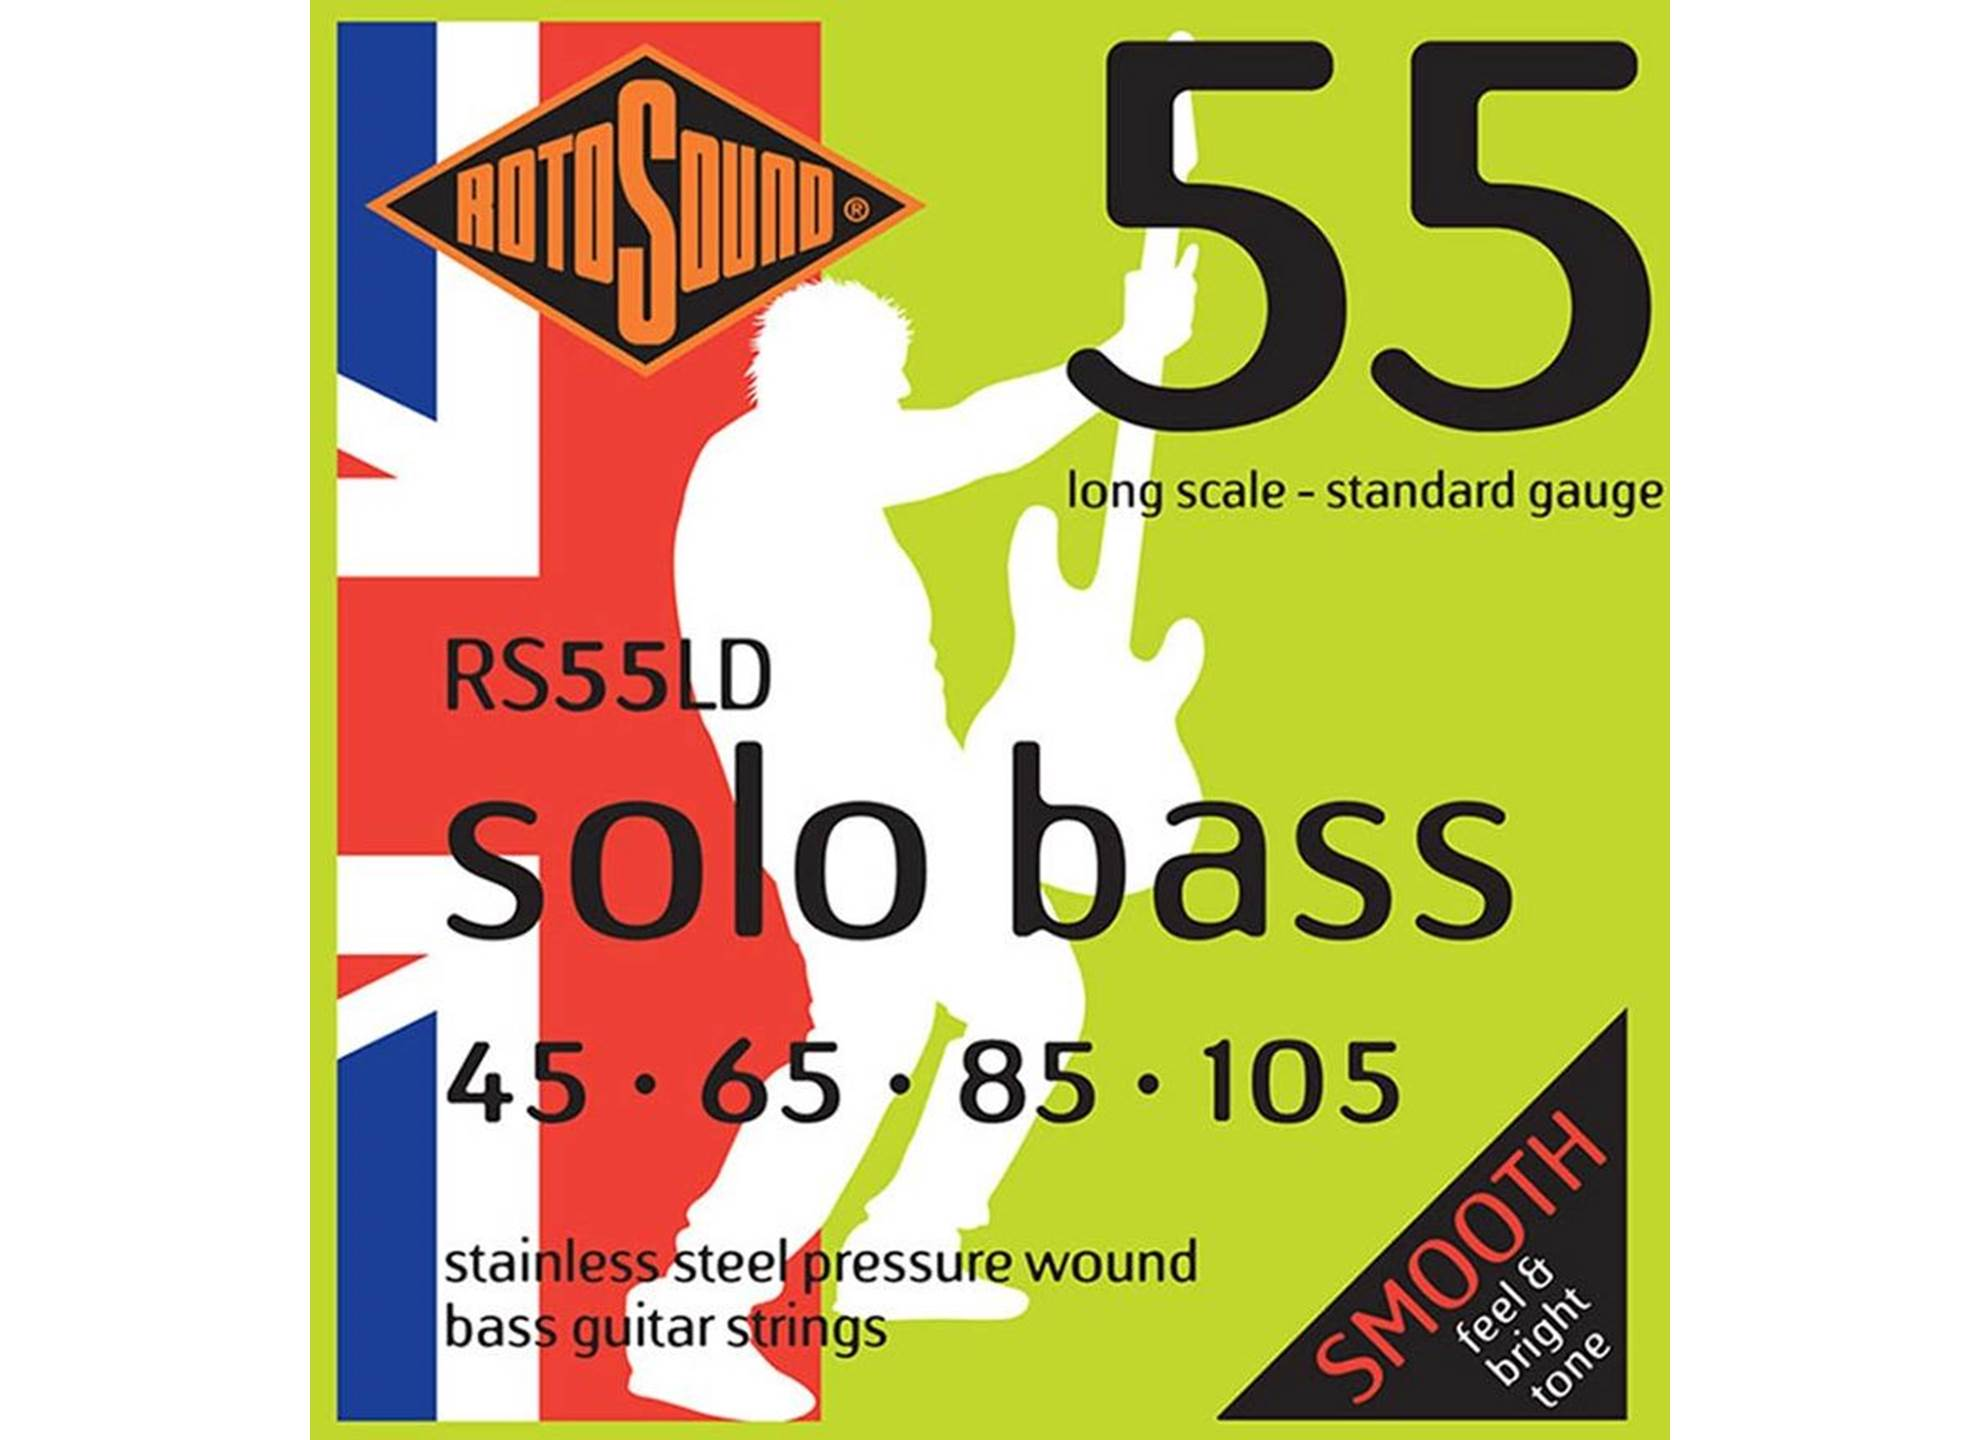 Solo Bass 55, Stainless Steel, Pressure Wound, 45-105